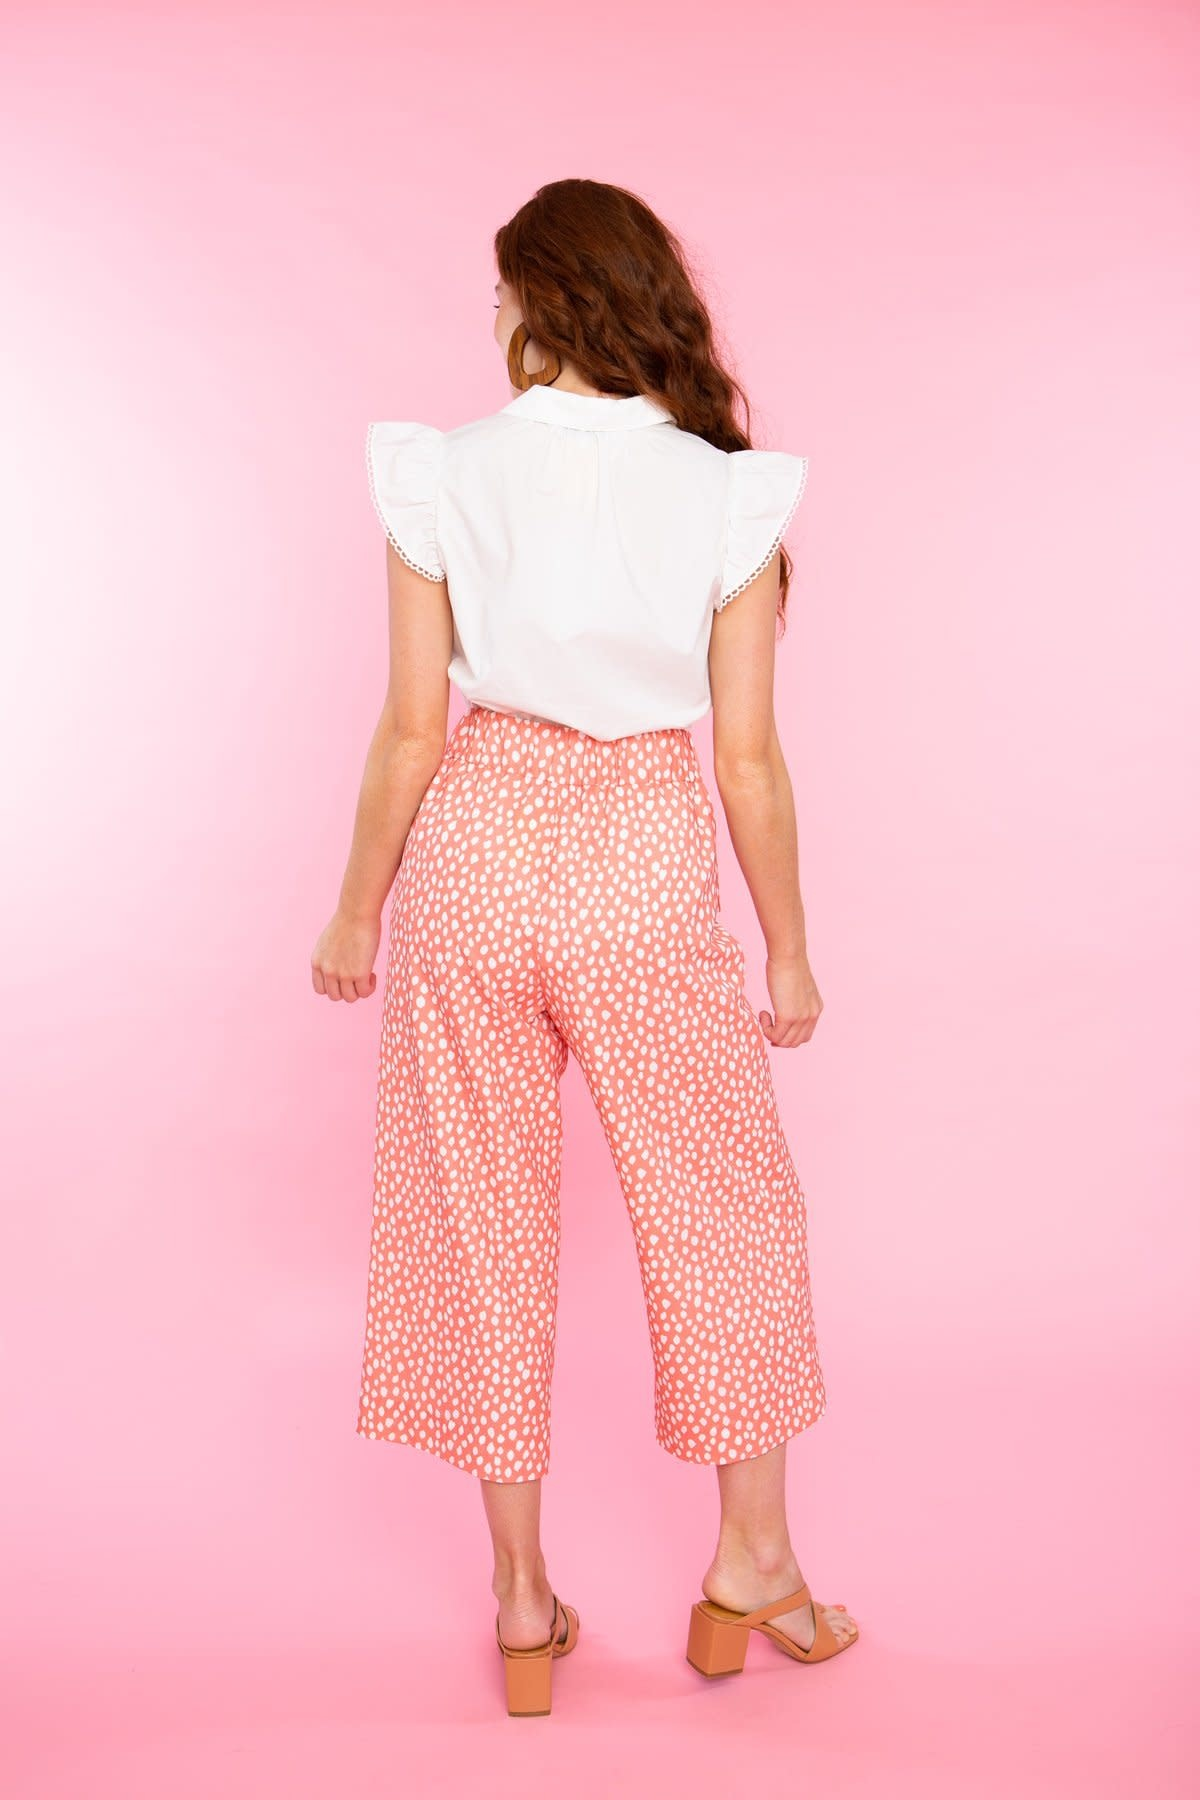 Crosby By Mollie Burch Dorthy Tie Pant Wildcat Clay